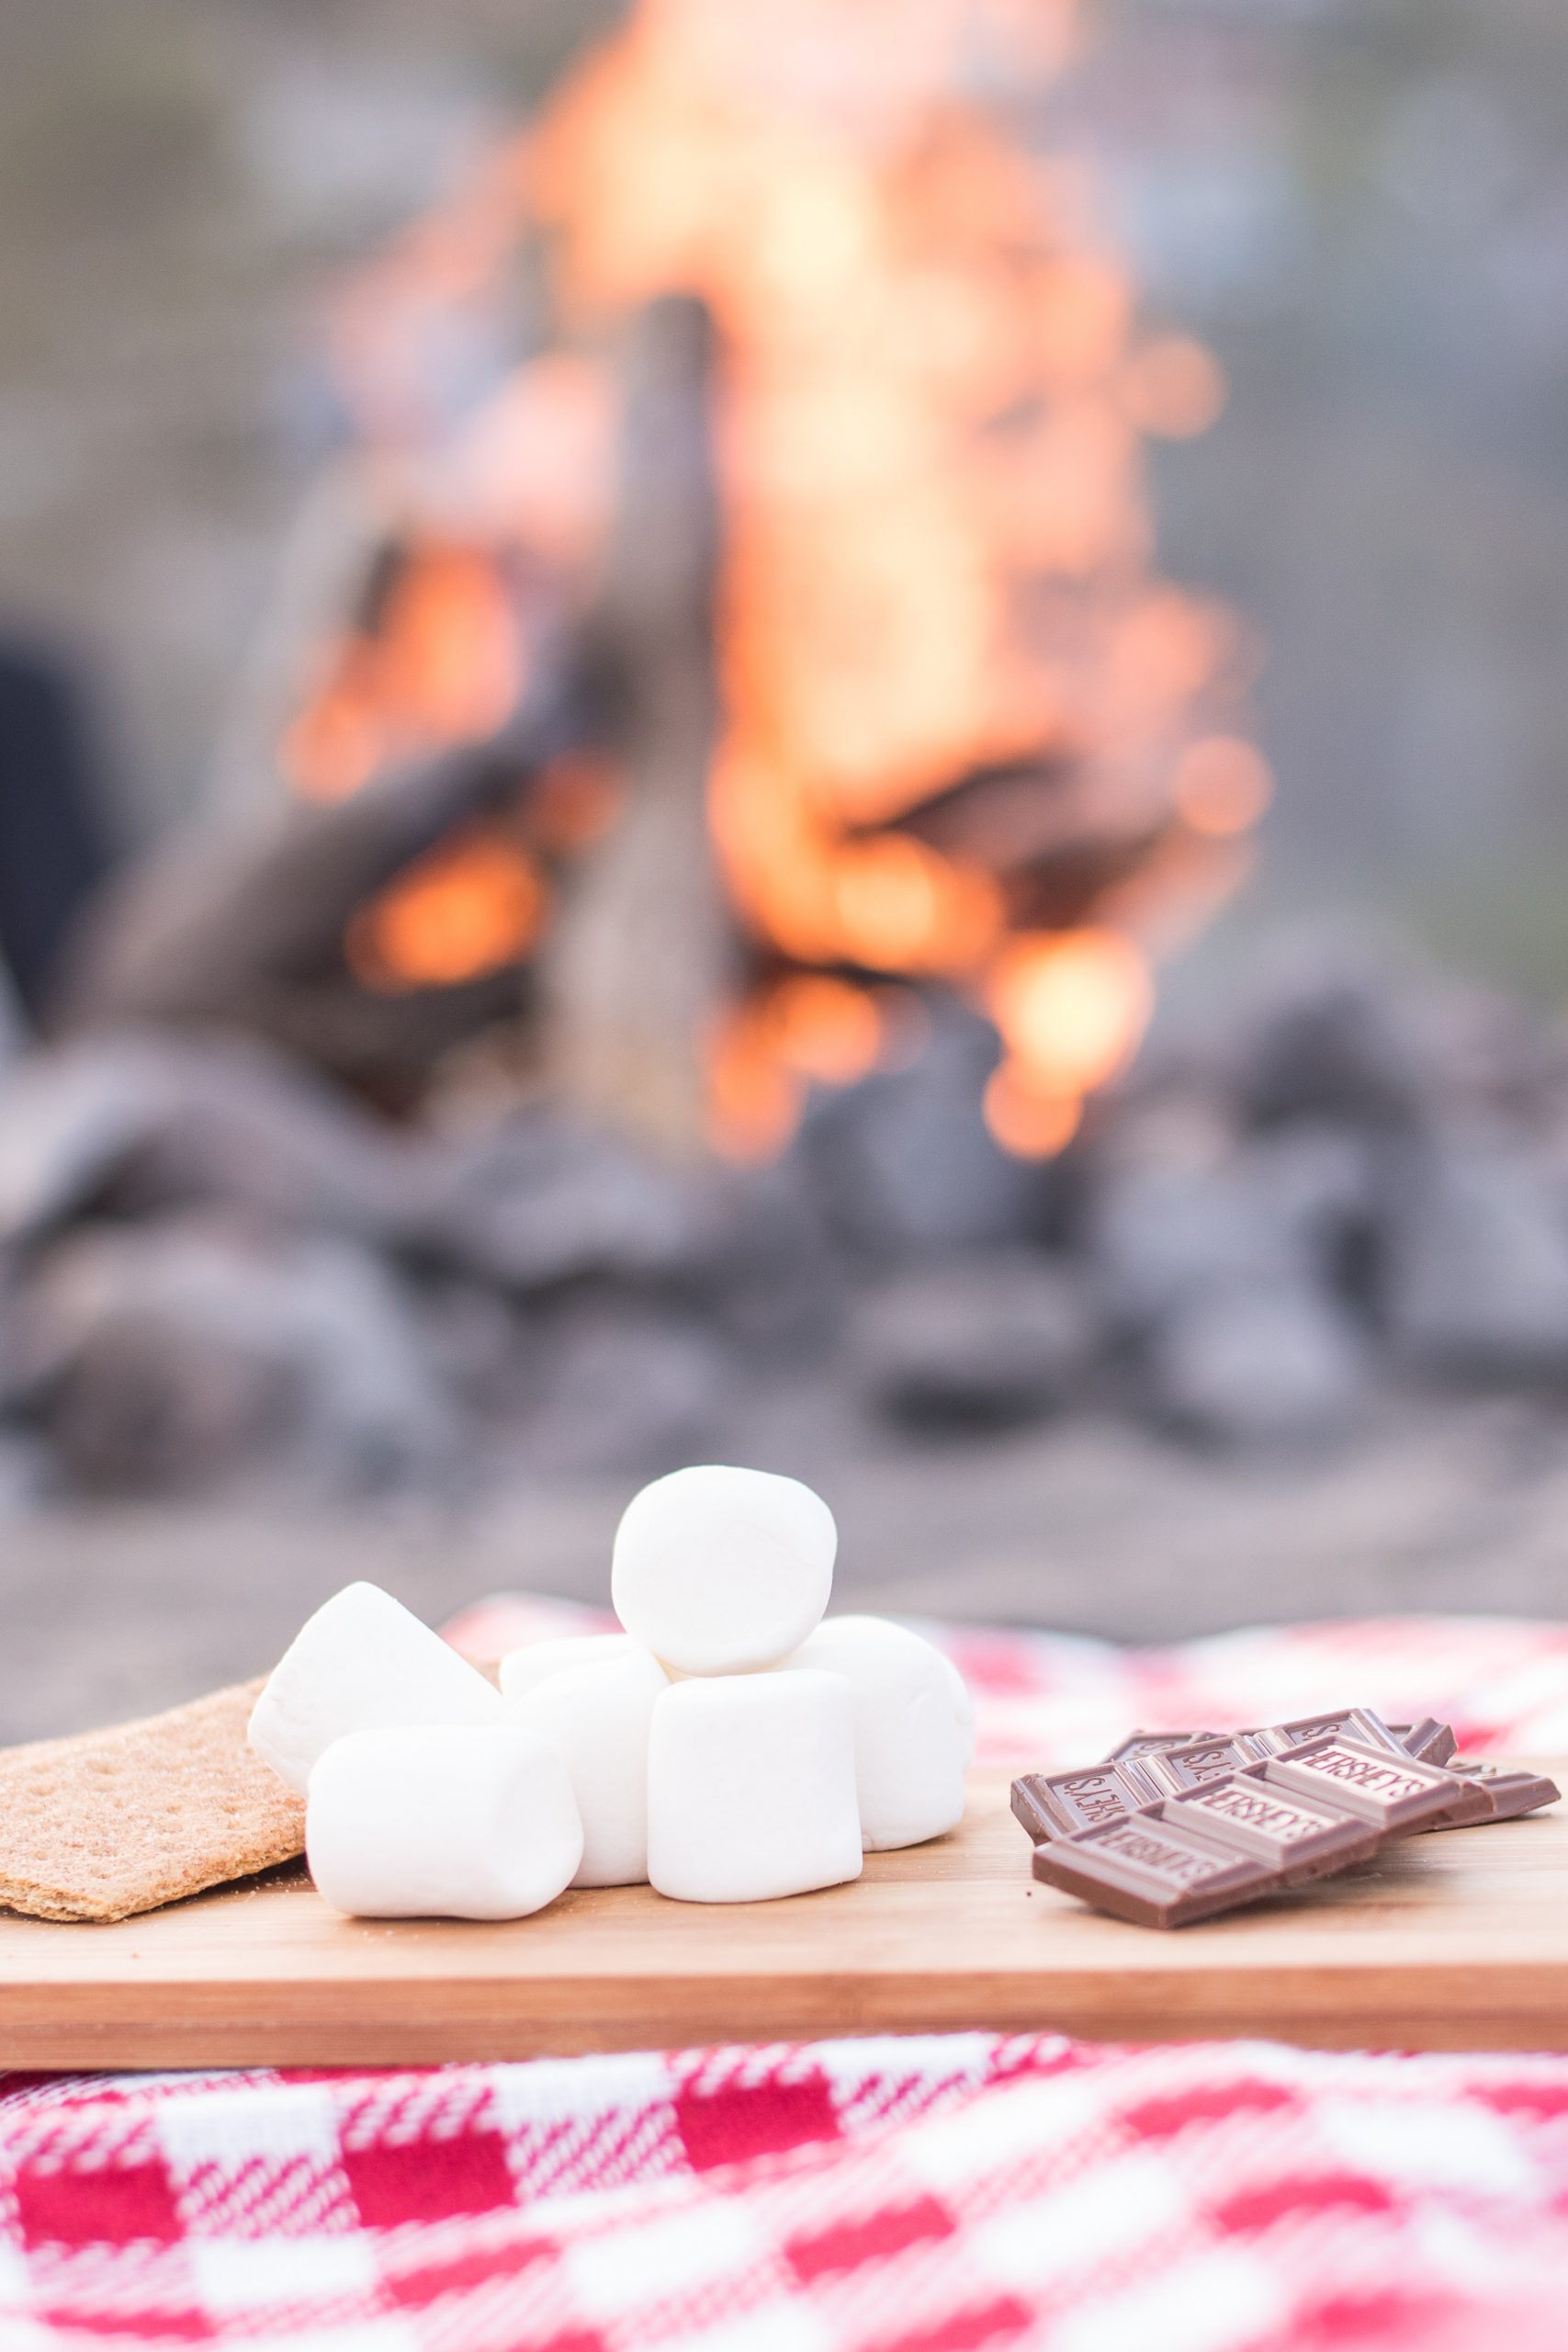 Image shows a photo of the ingredients for smores sitting on a table. In the background, a campfire is burning.